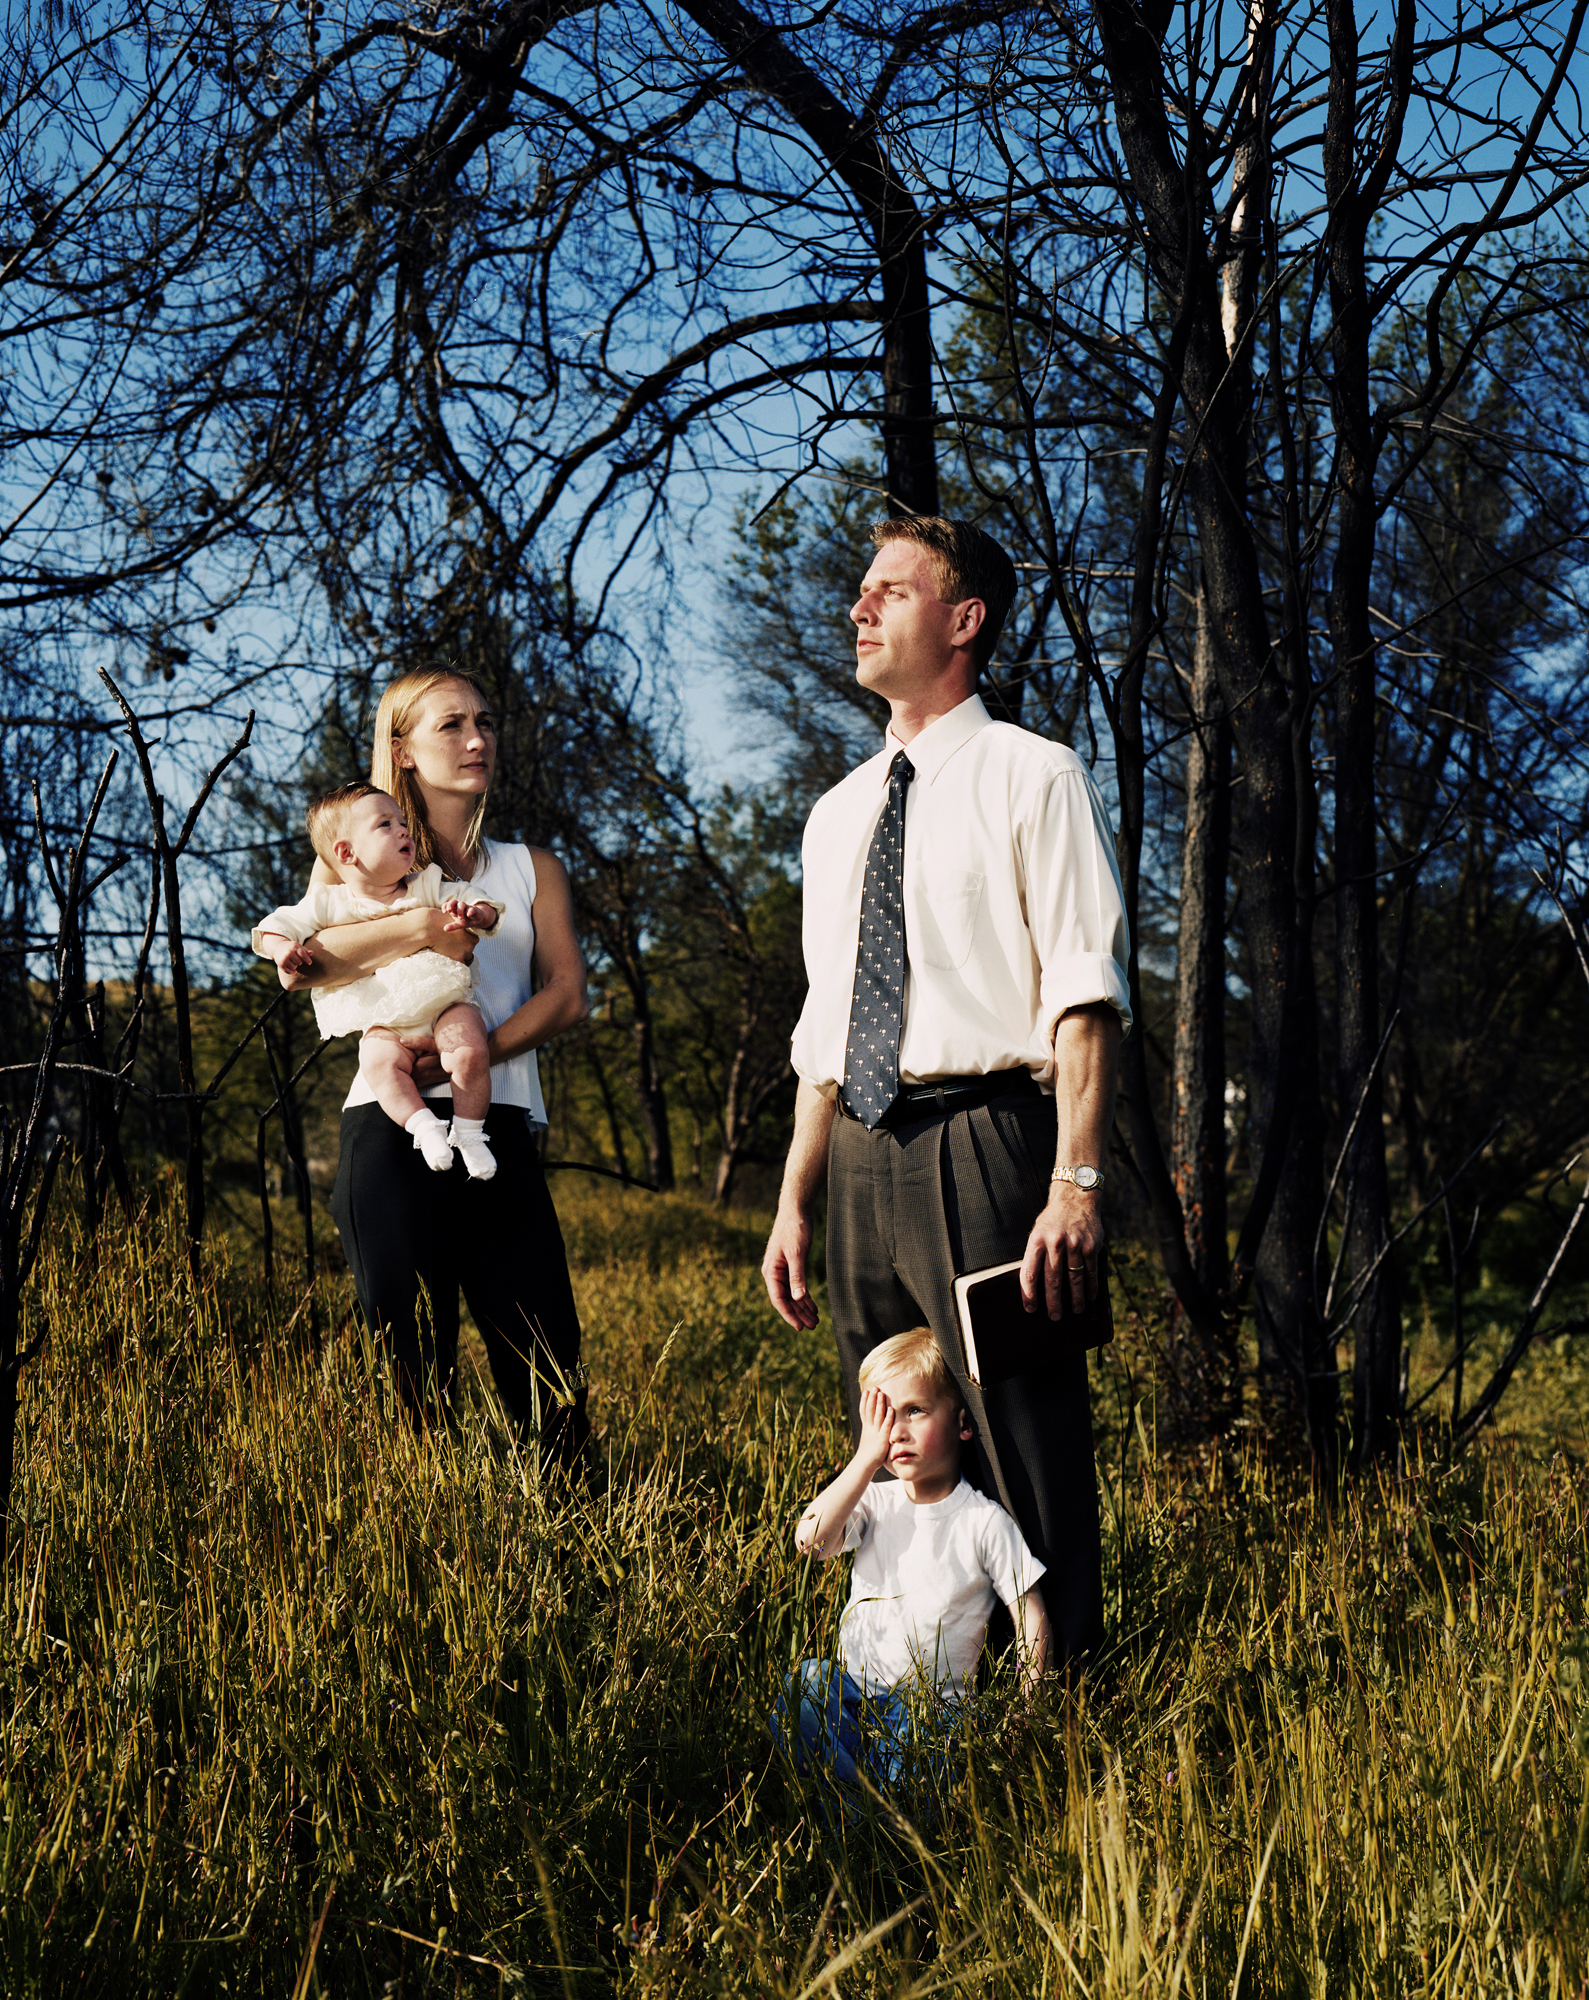 Cory Burnell with family - Founder of Christian Exodus - a right-wing Christian secessionist movement at home in northern California